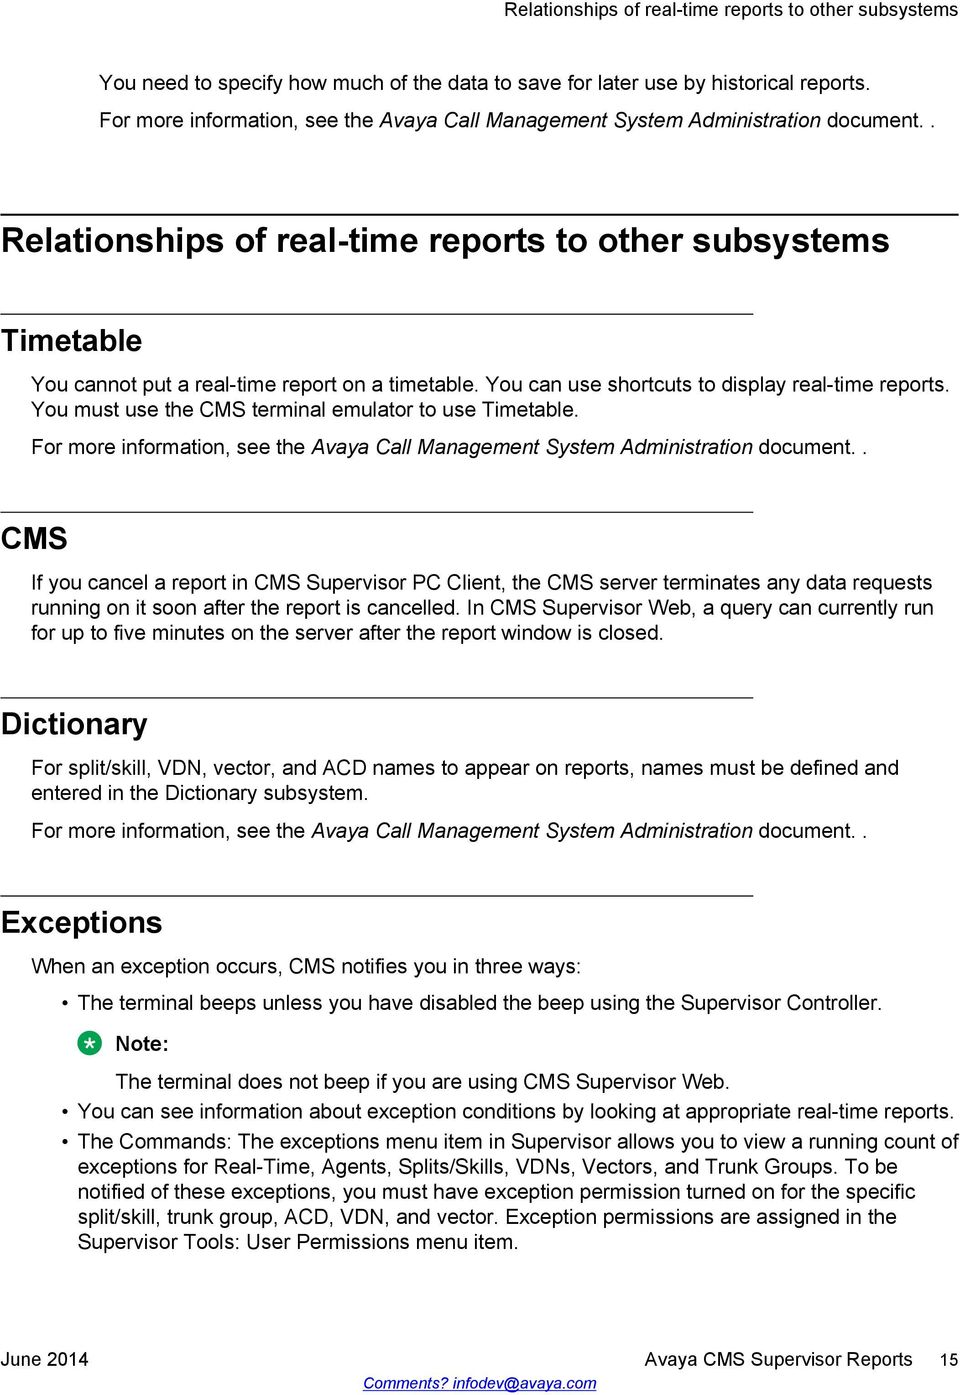 You can use shortcuts to display real-time reports. You must use the CMS